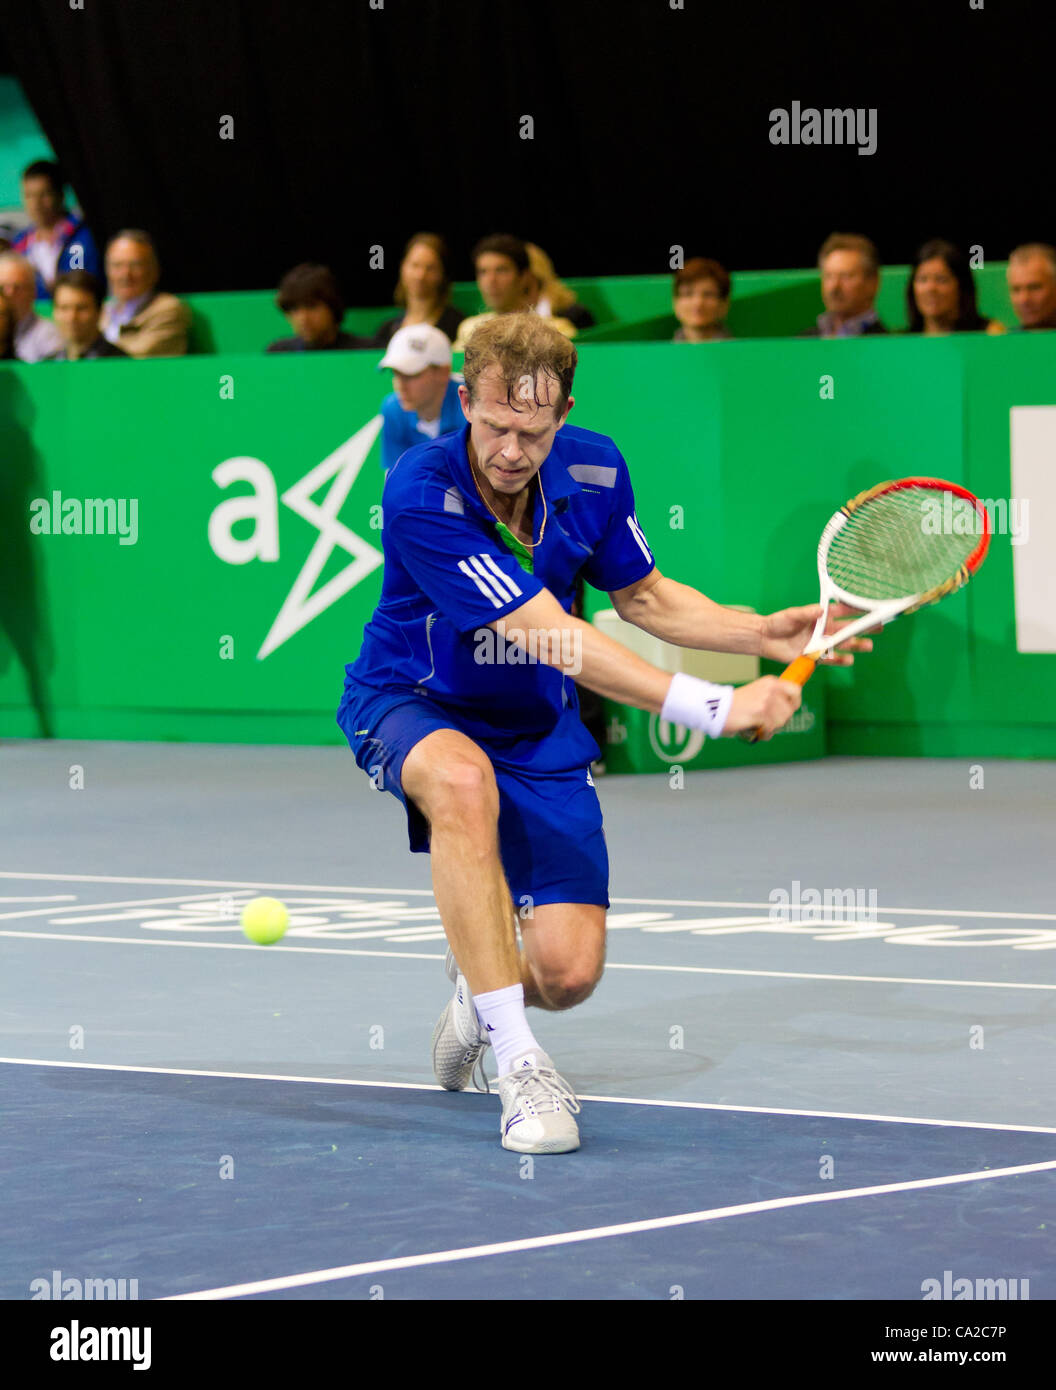 ZURICH, SWITZERLAND-MARCH 24: Stefan Edberg plays tennis in final of BNP Paribas Open Champions Tour aganinst Carlos - Stock Image